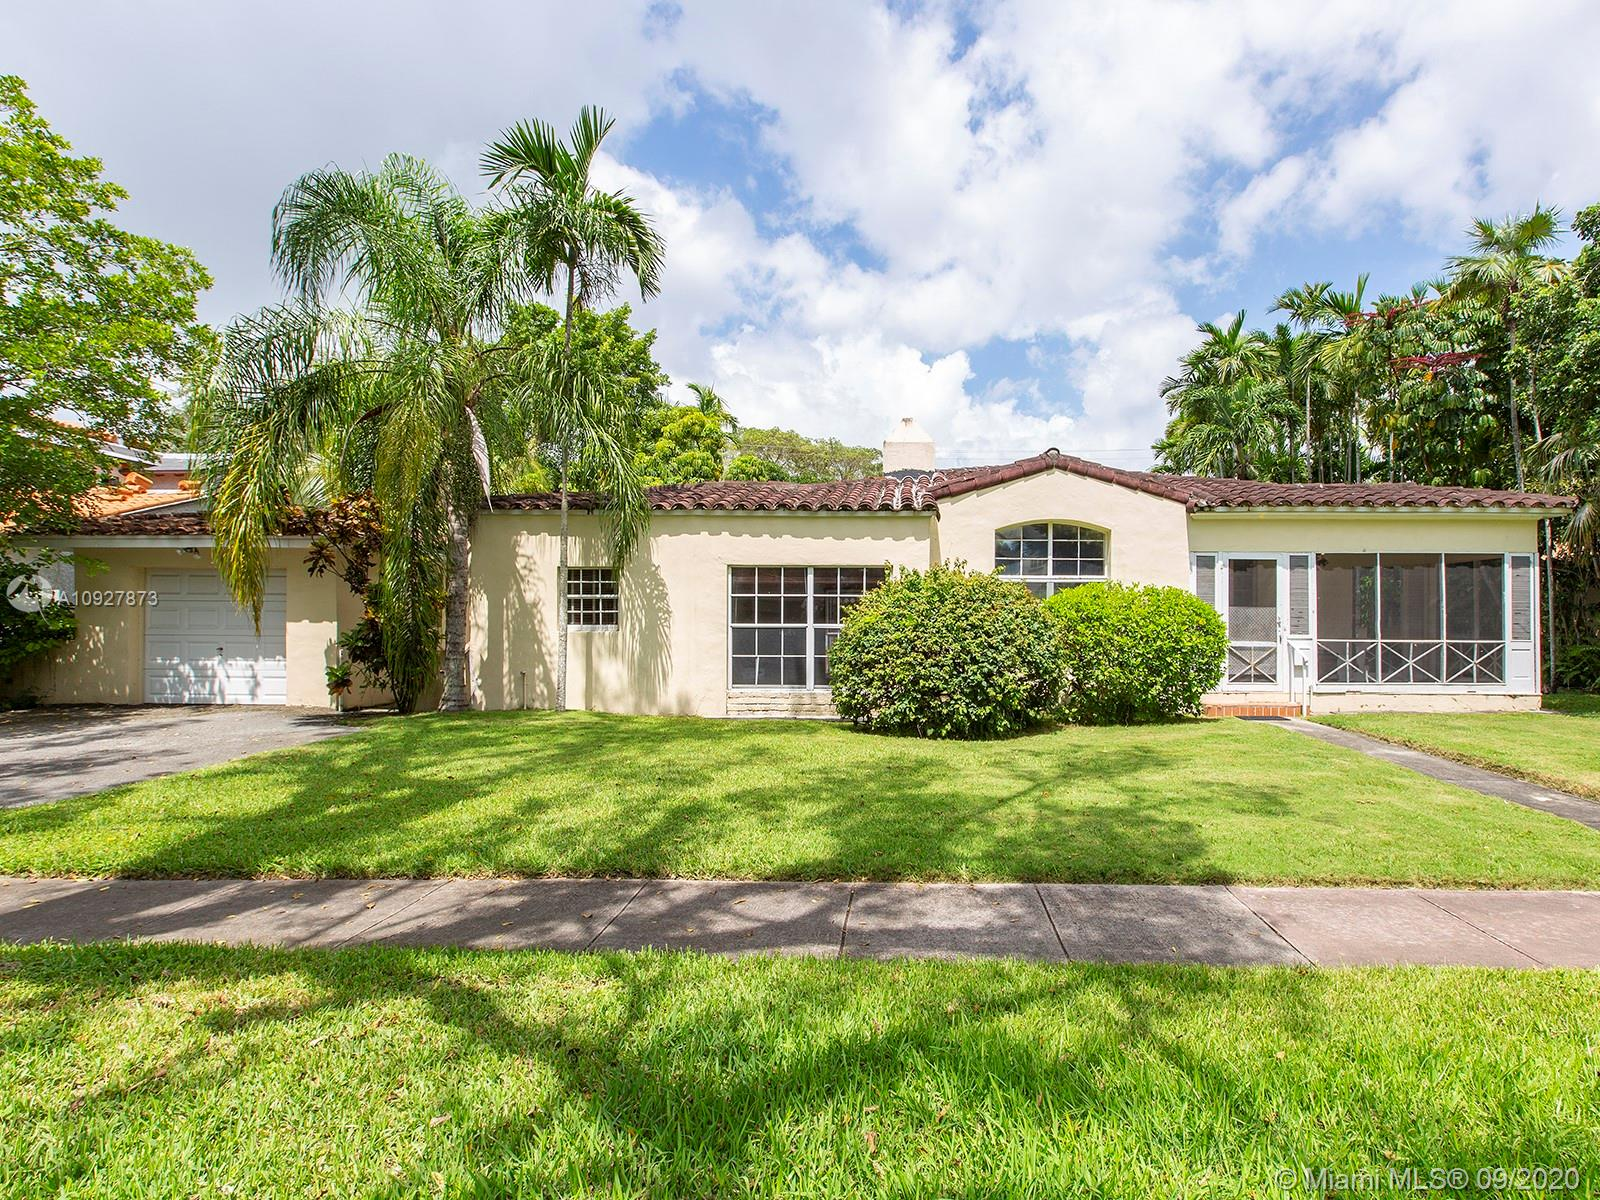 737  Minorca Ave  For Sale A10927873, FL